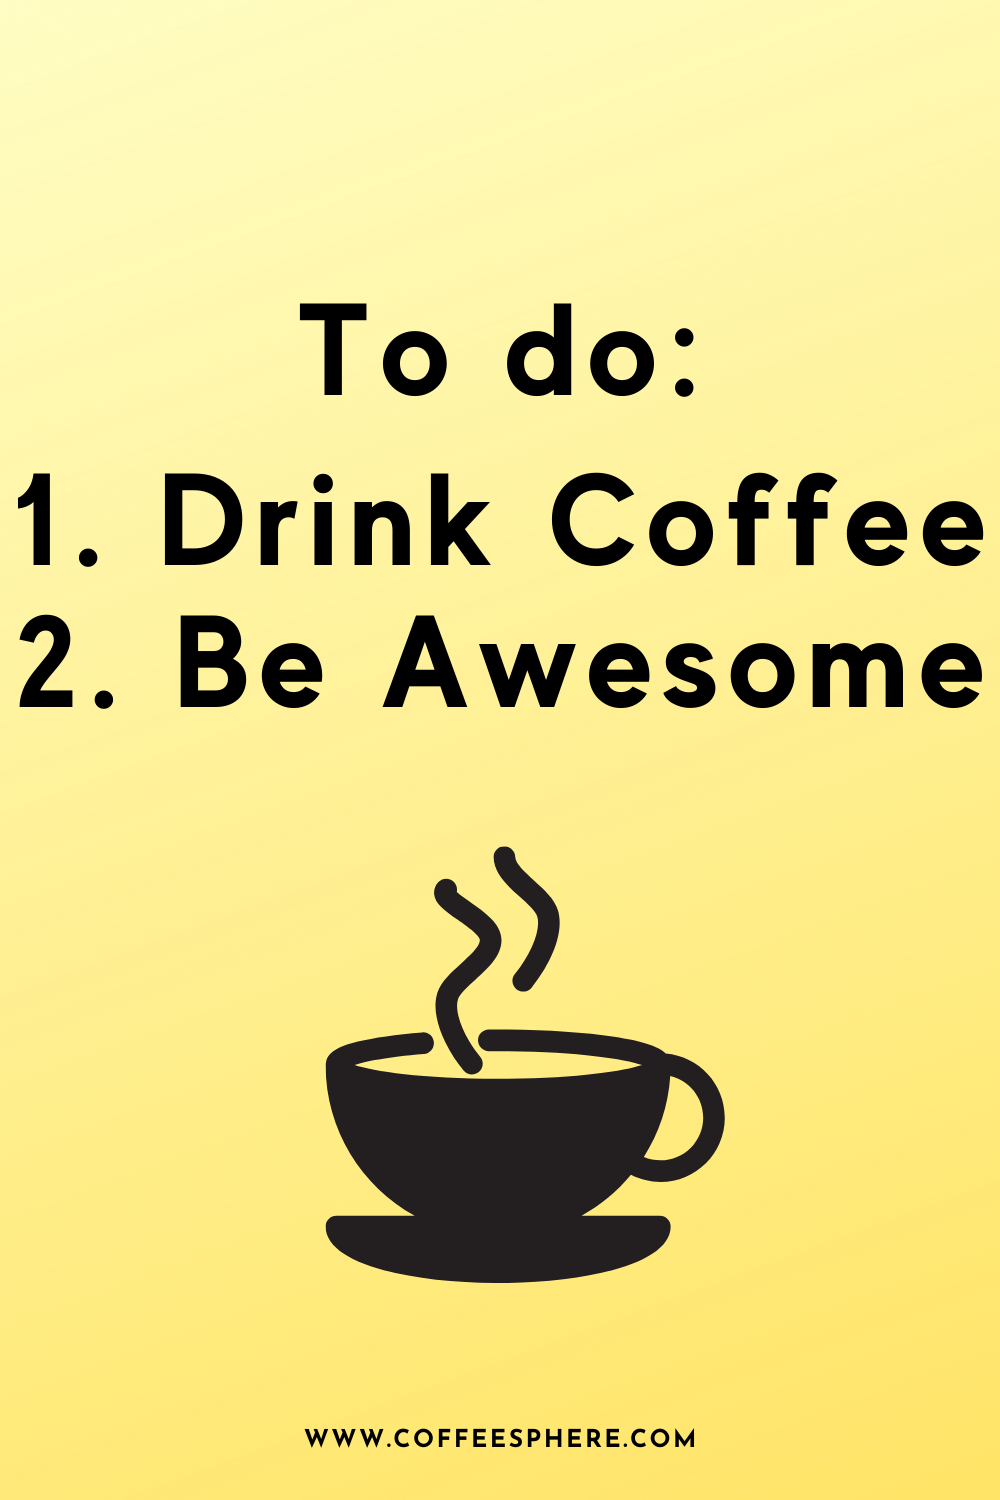 25 Coffee Quotes Funny Coffee Quotes That Will Brighten Your Mood Coffeesphere Funny Coffee Quotes Coffee Humor Coffee Jokes